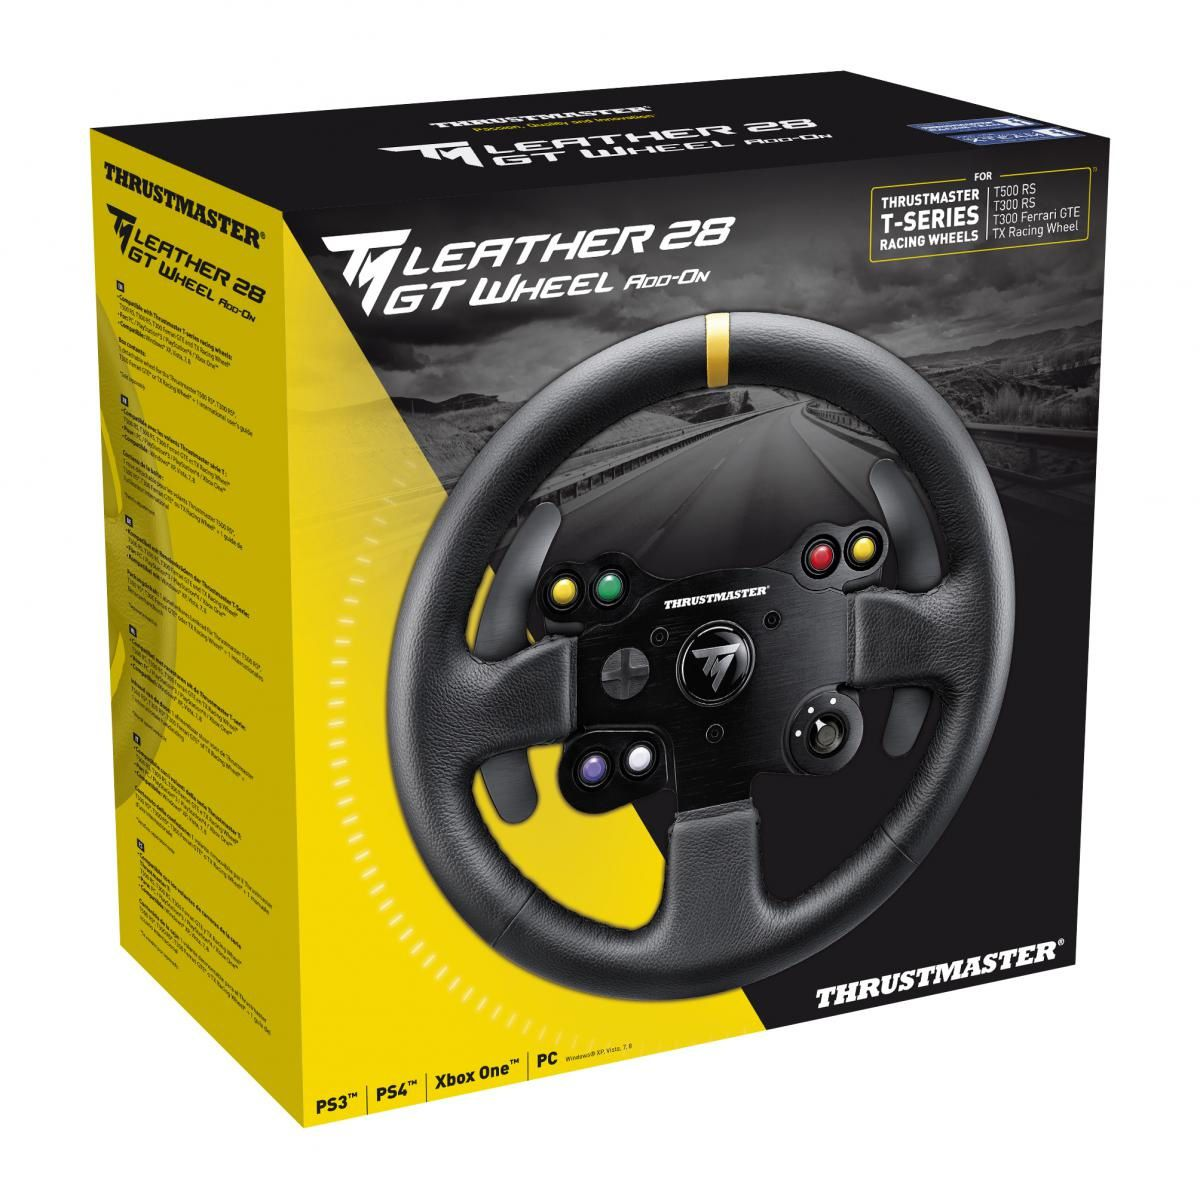 Le nouveau volant Thrustmaster Leather 28 GT